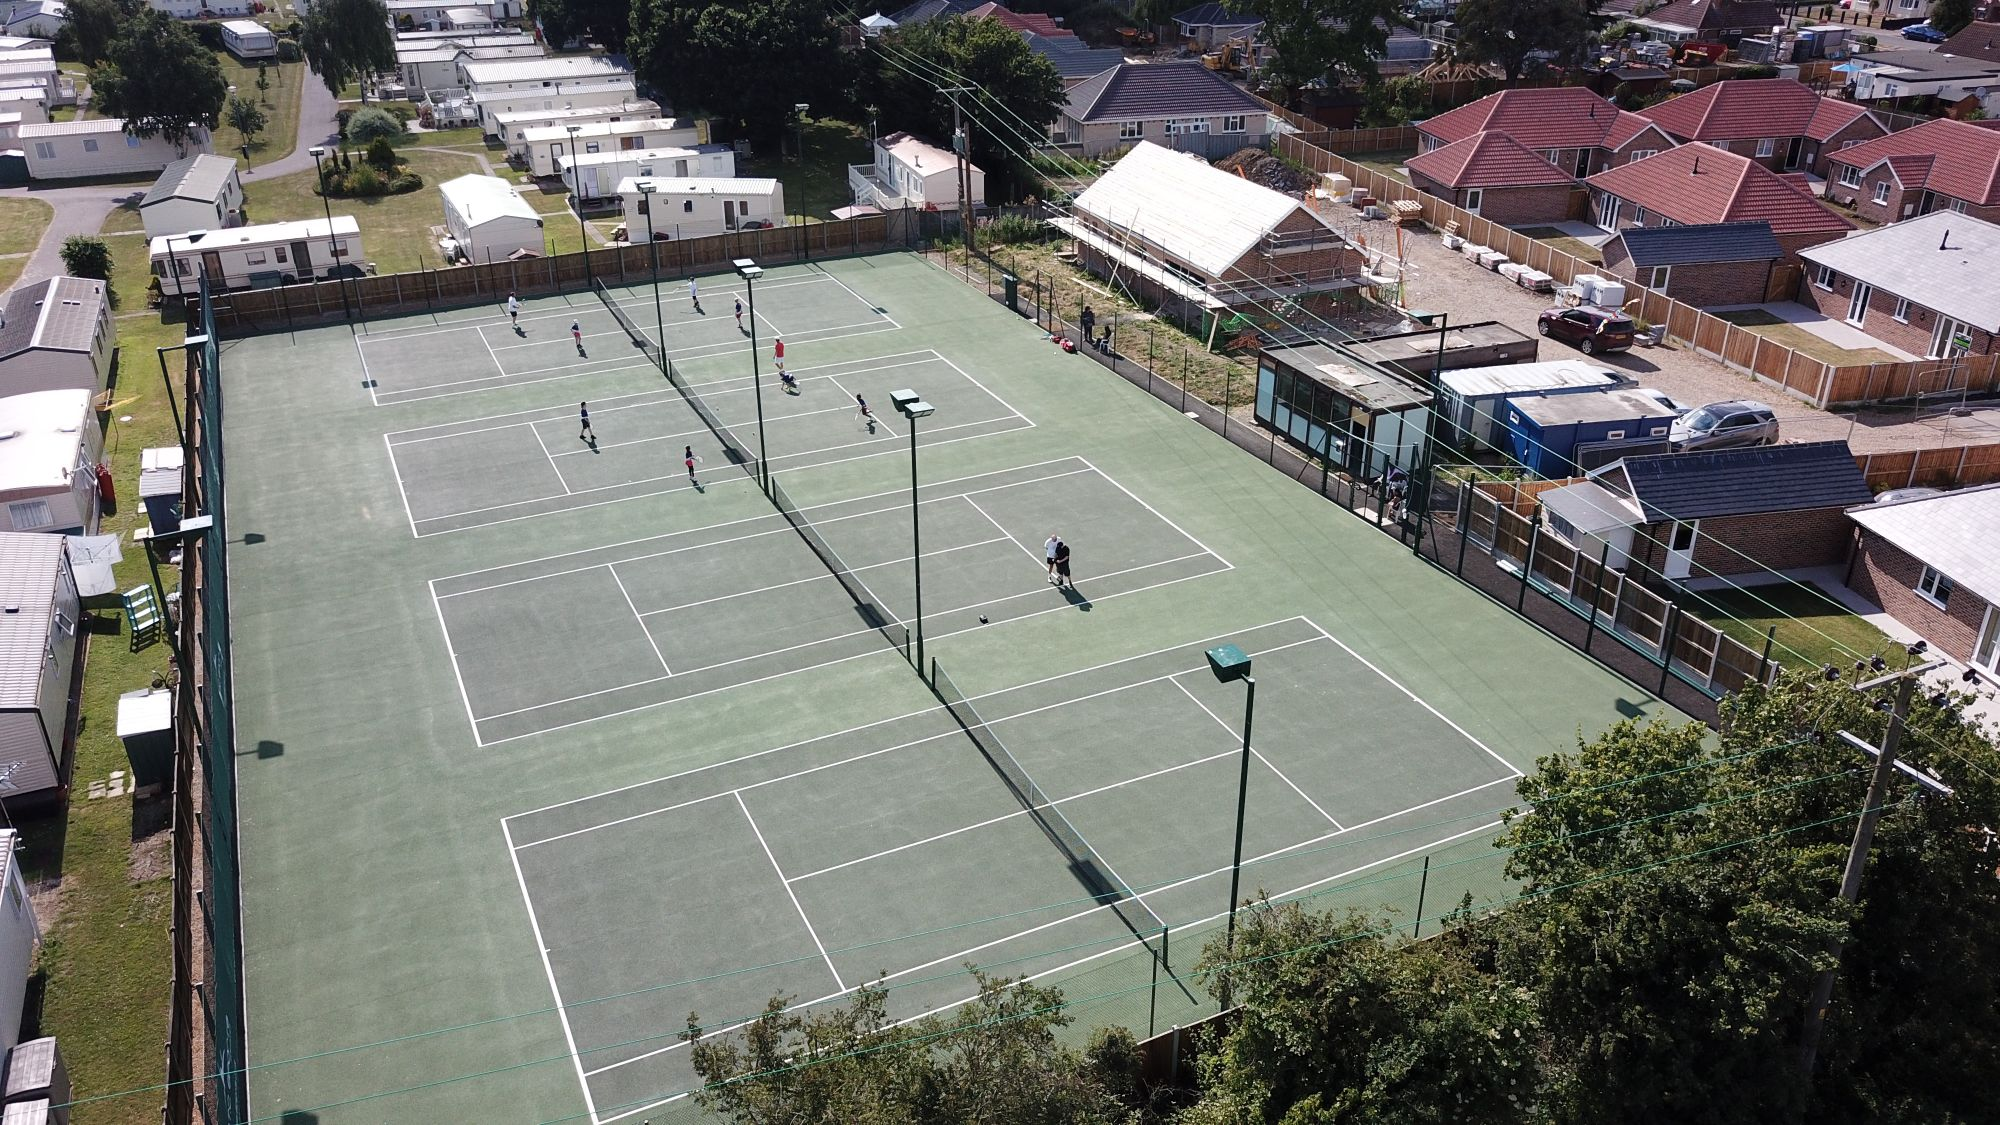 Little Clacton Tennis Club's new hard courts feature tennis court floodlights powered by renewable energy